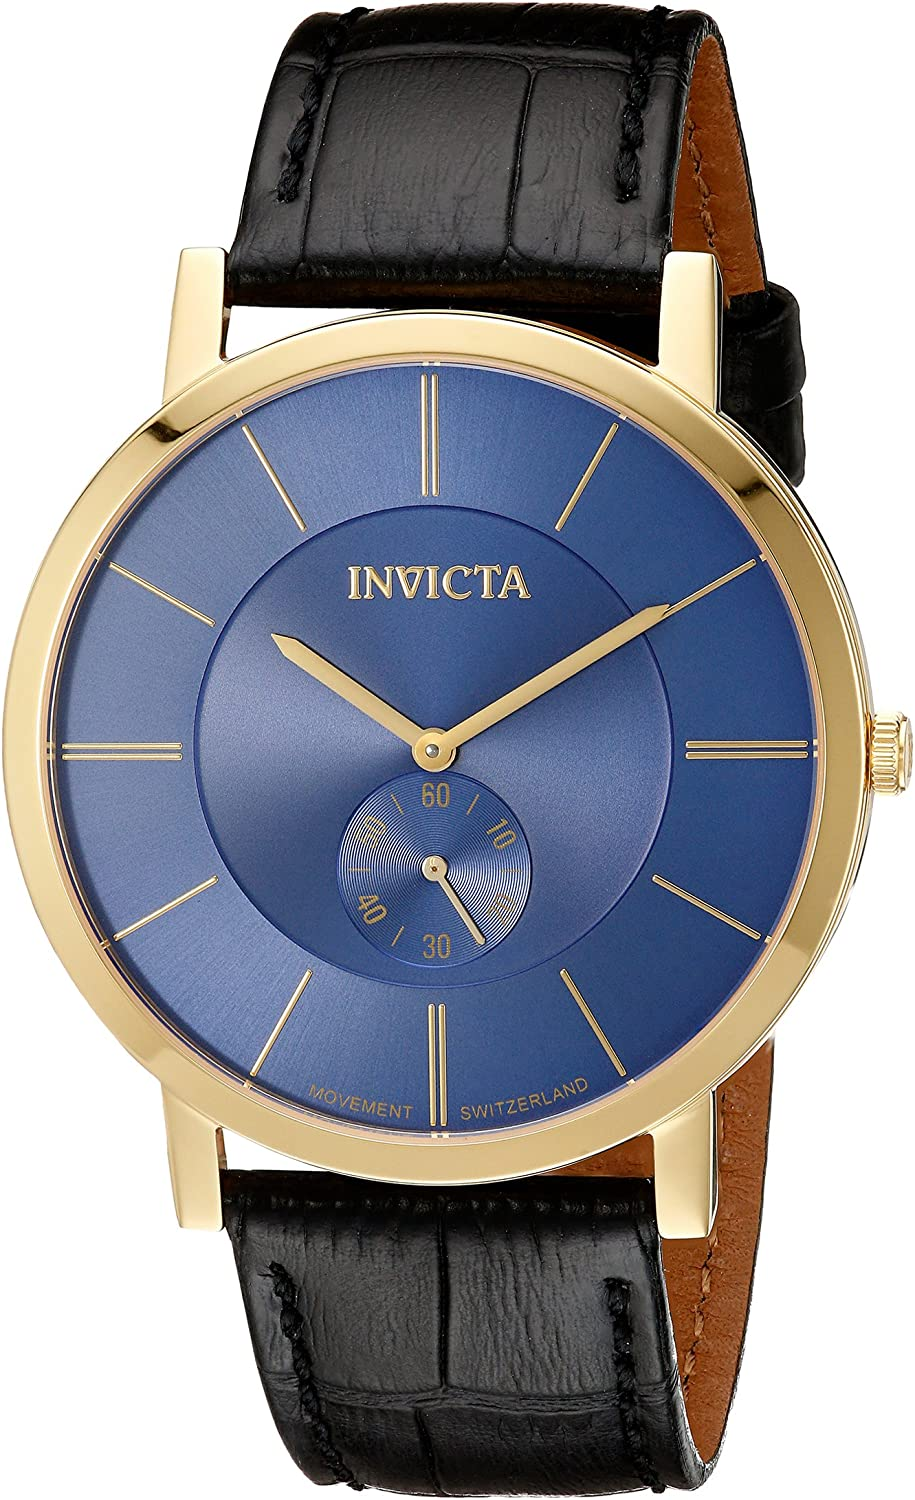 Invicta Men s 19541 18k Gold Ion-Plated Watch with Black Leather Band